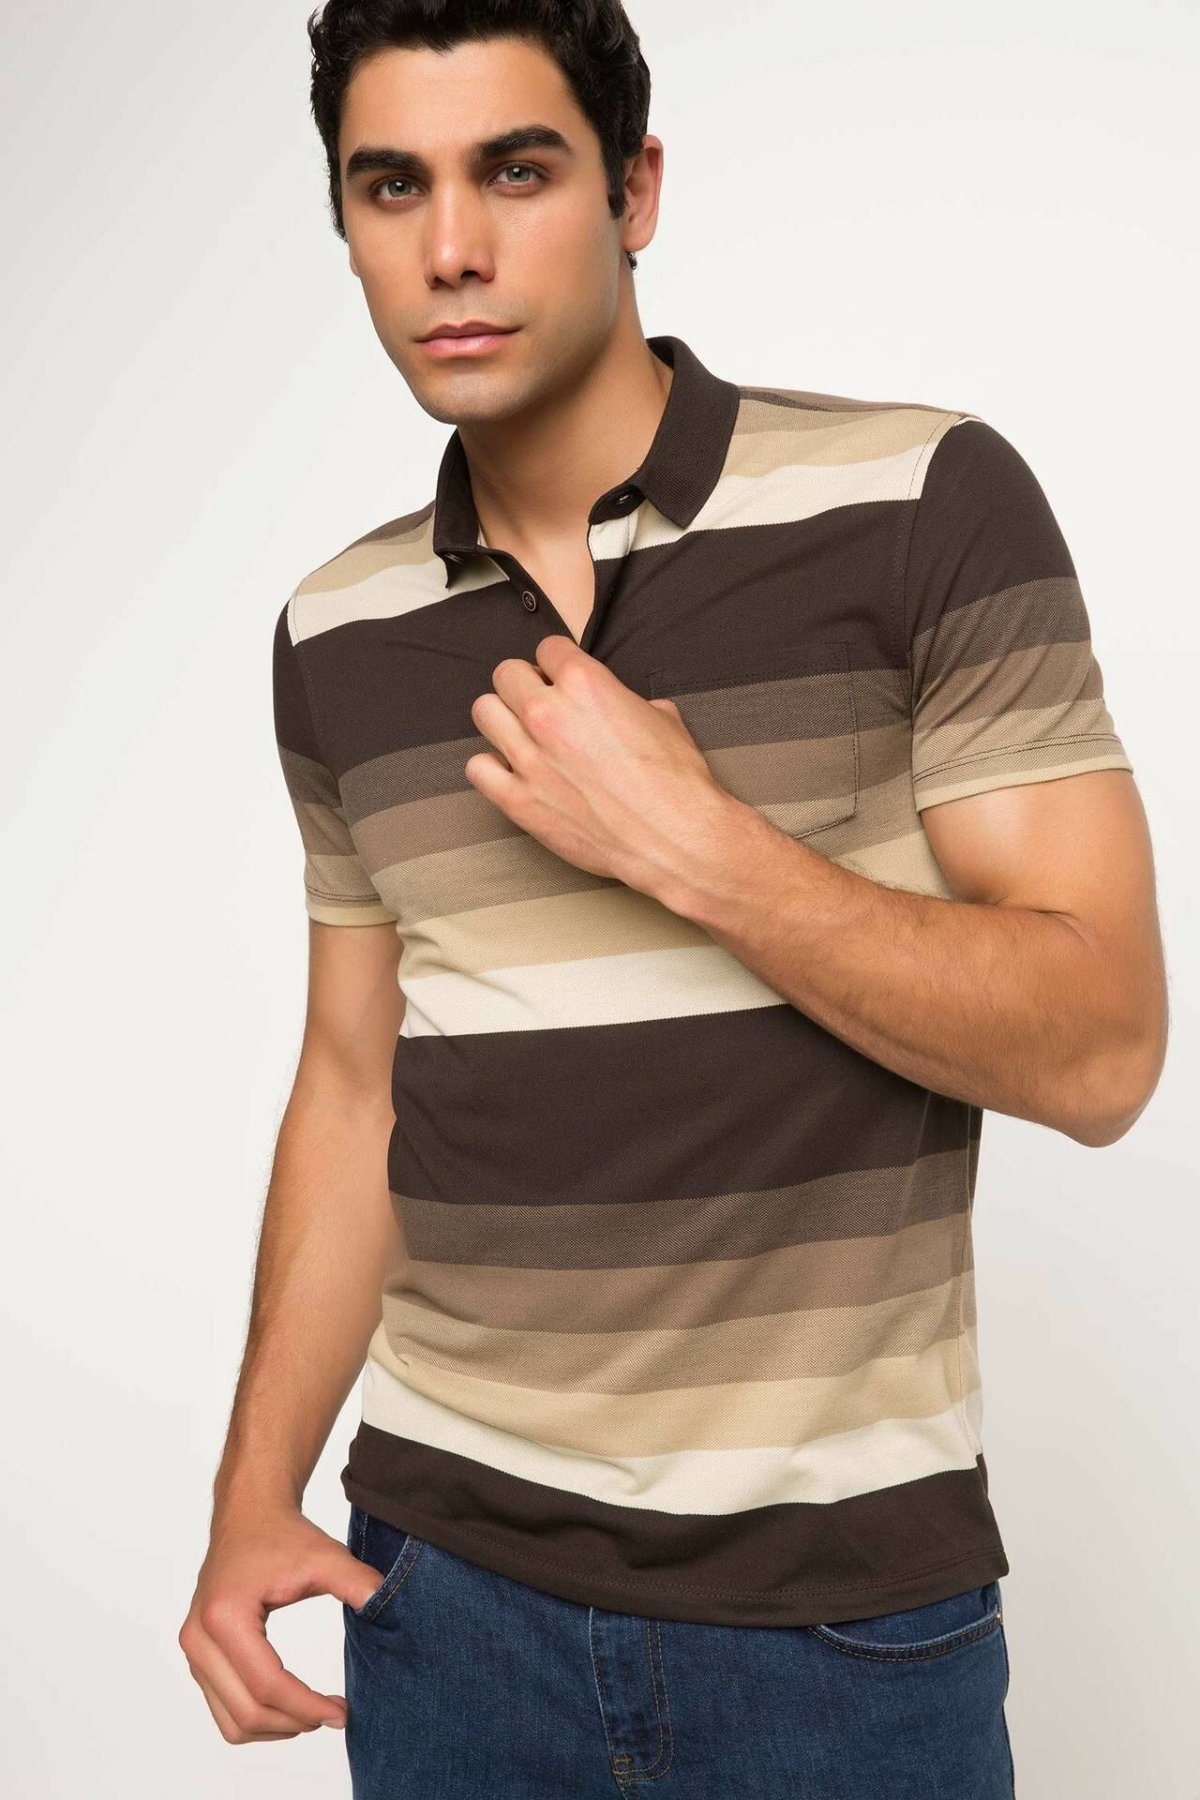 DeFacto Man Fashion Polo Shirt Summer Male Casual Striped Short Sleeves Men's Comfort Loose Tops New -H8733AZ17SM